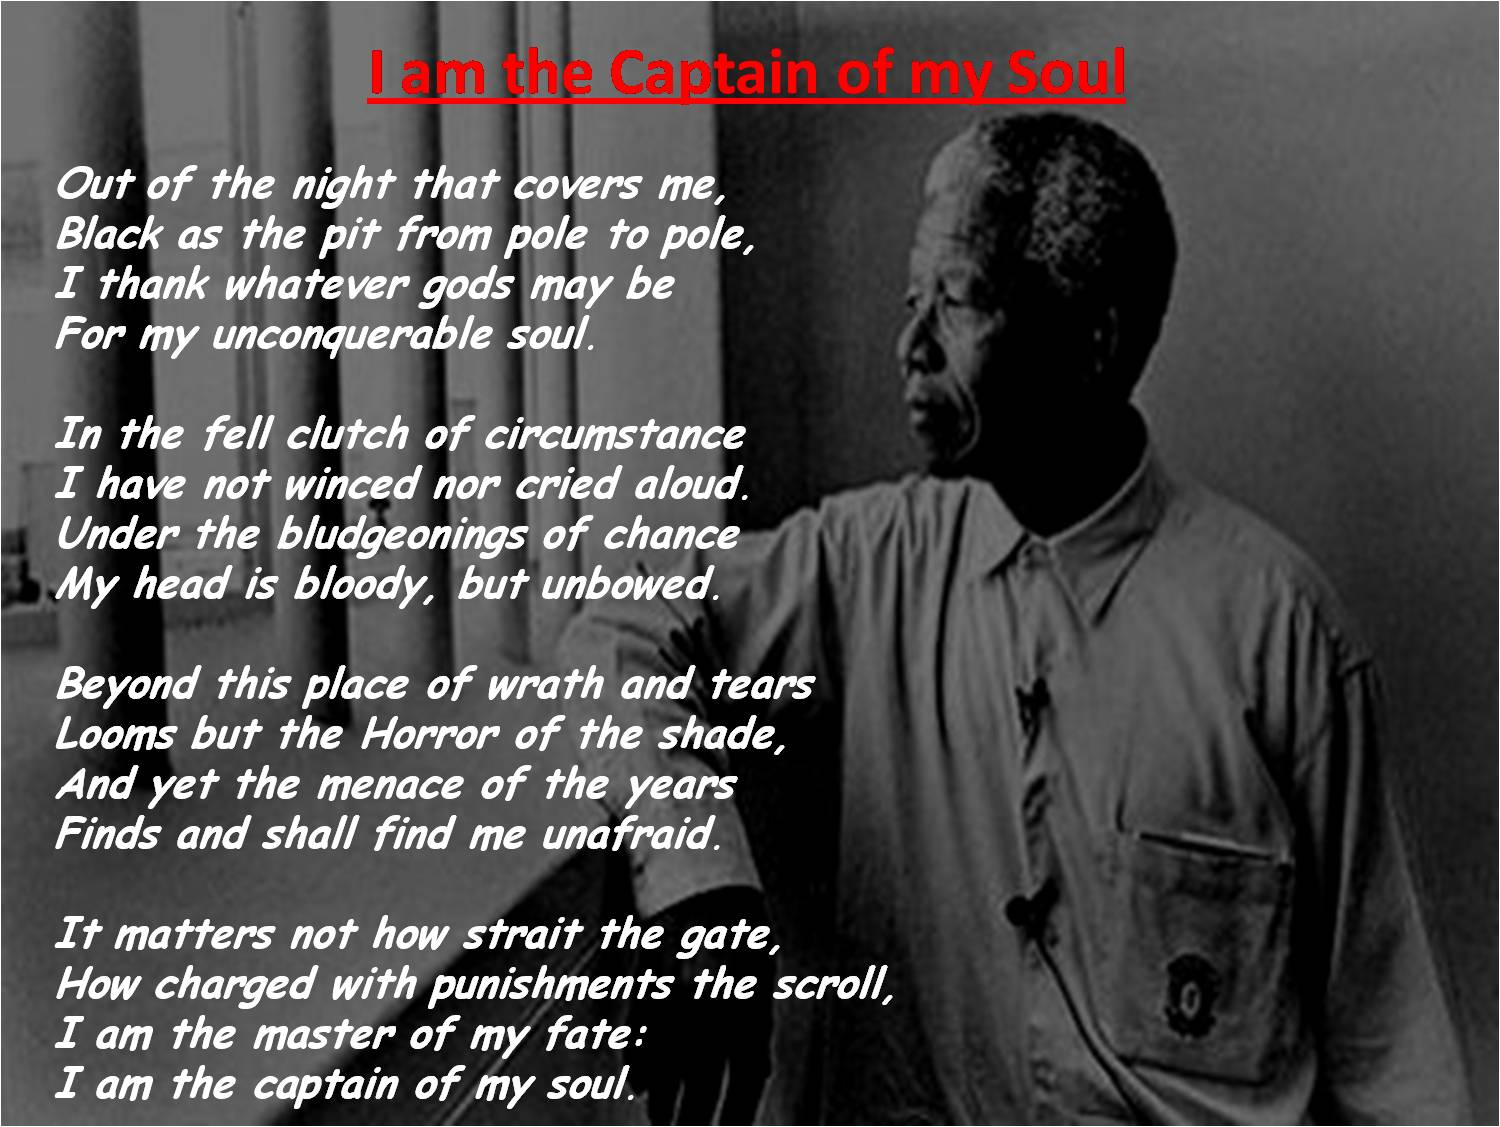 Quotes Nelson Mandela My Coolest Quotes I Am The Captain Of My Soul  Nelson Mandela